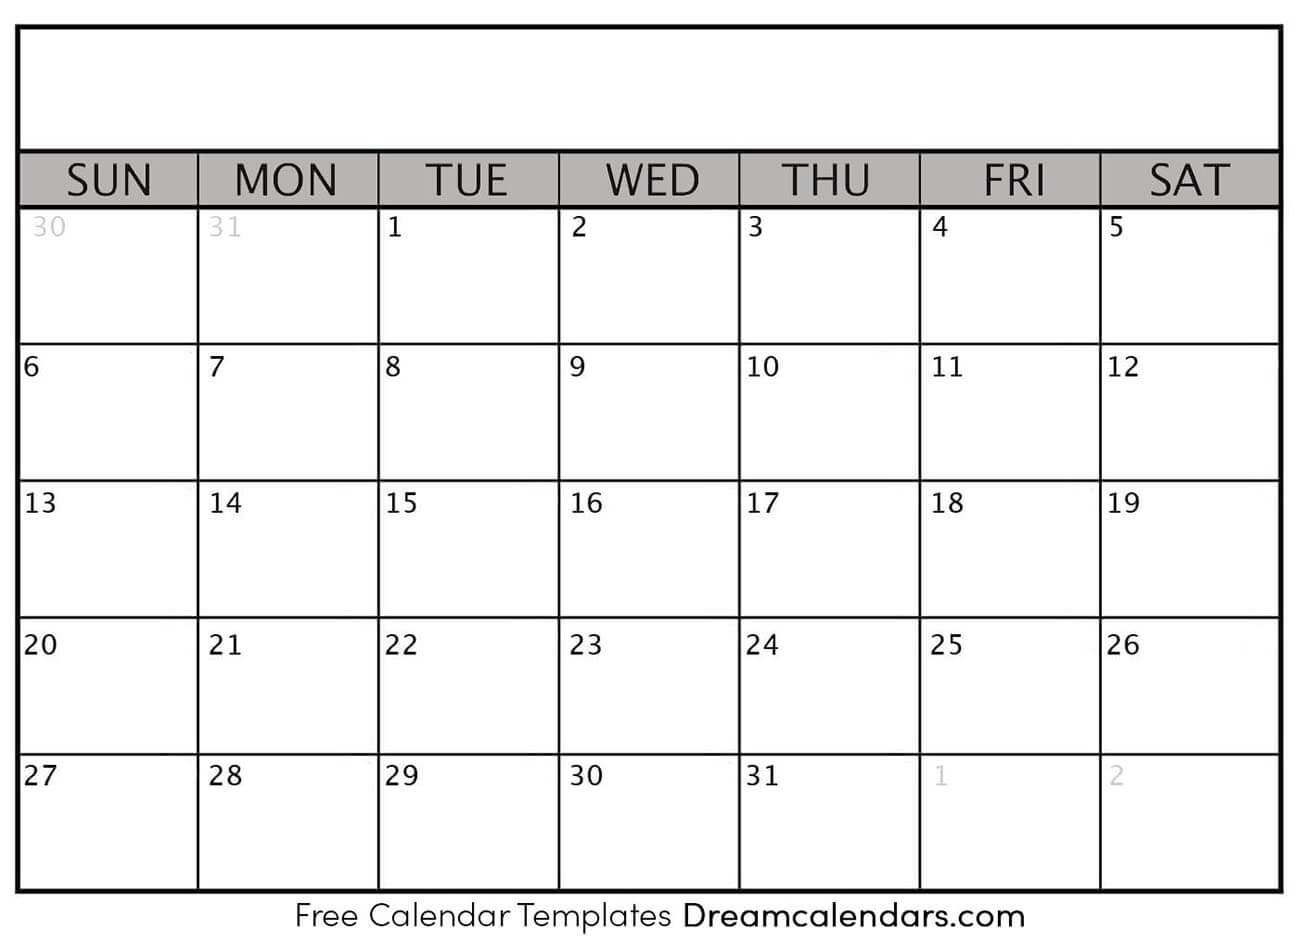 Printable Blank Calendar 2021 | Dream Calendars Free Printable Monthly Calendar Without Download